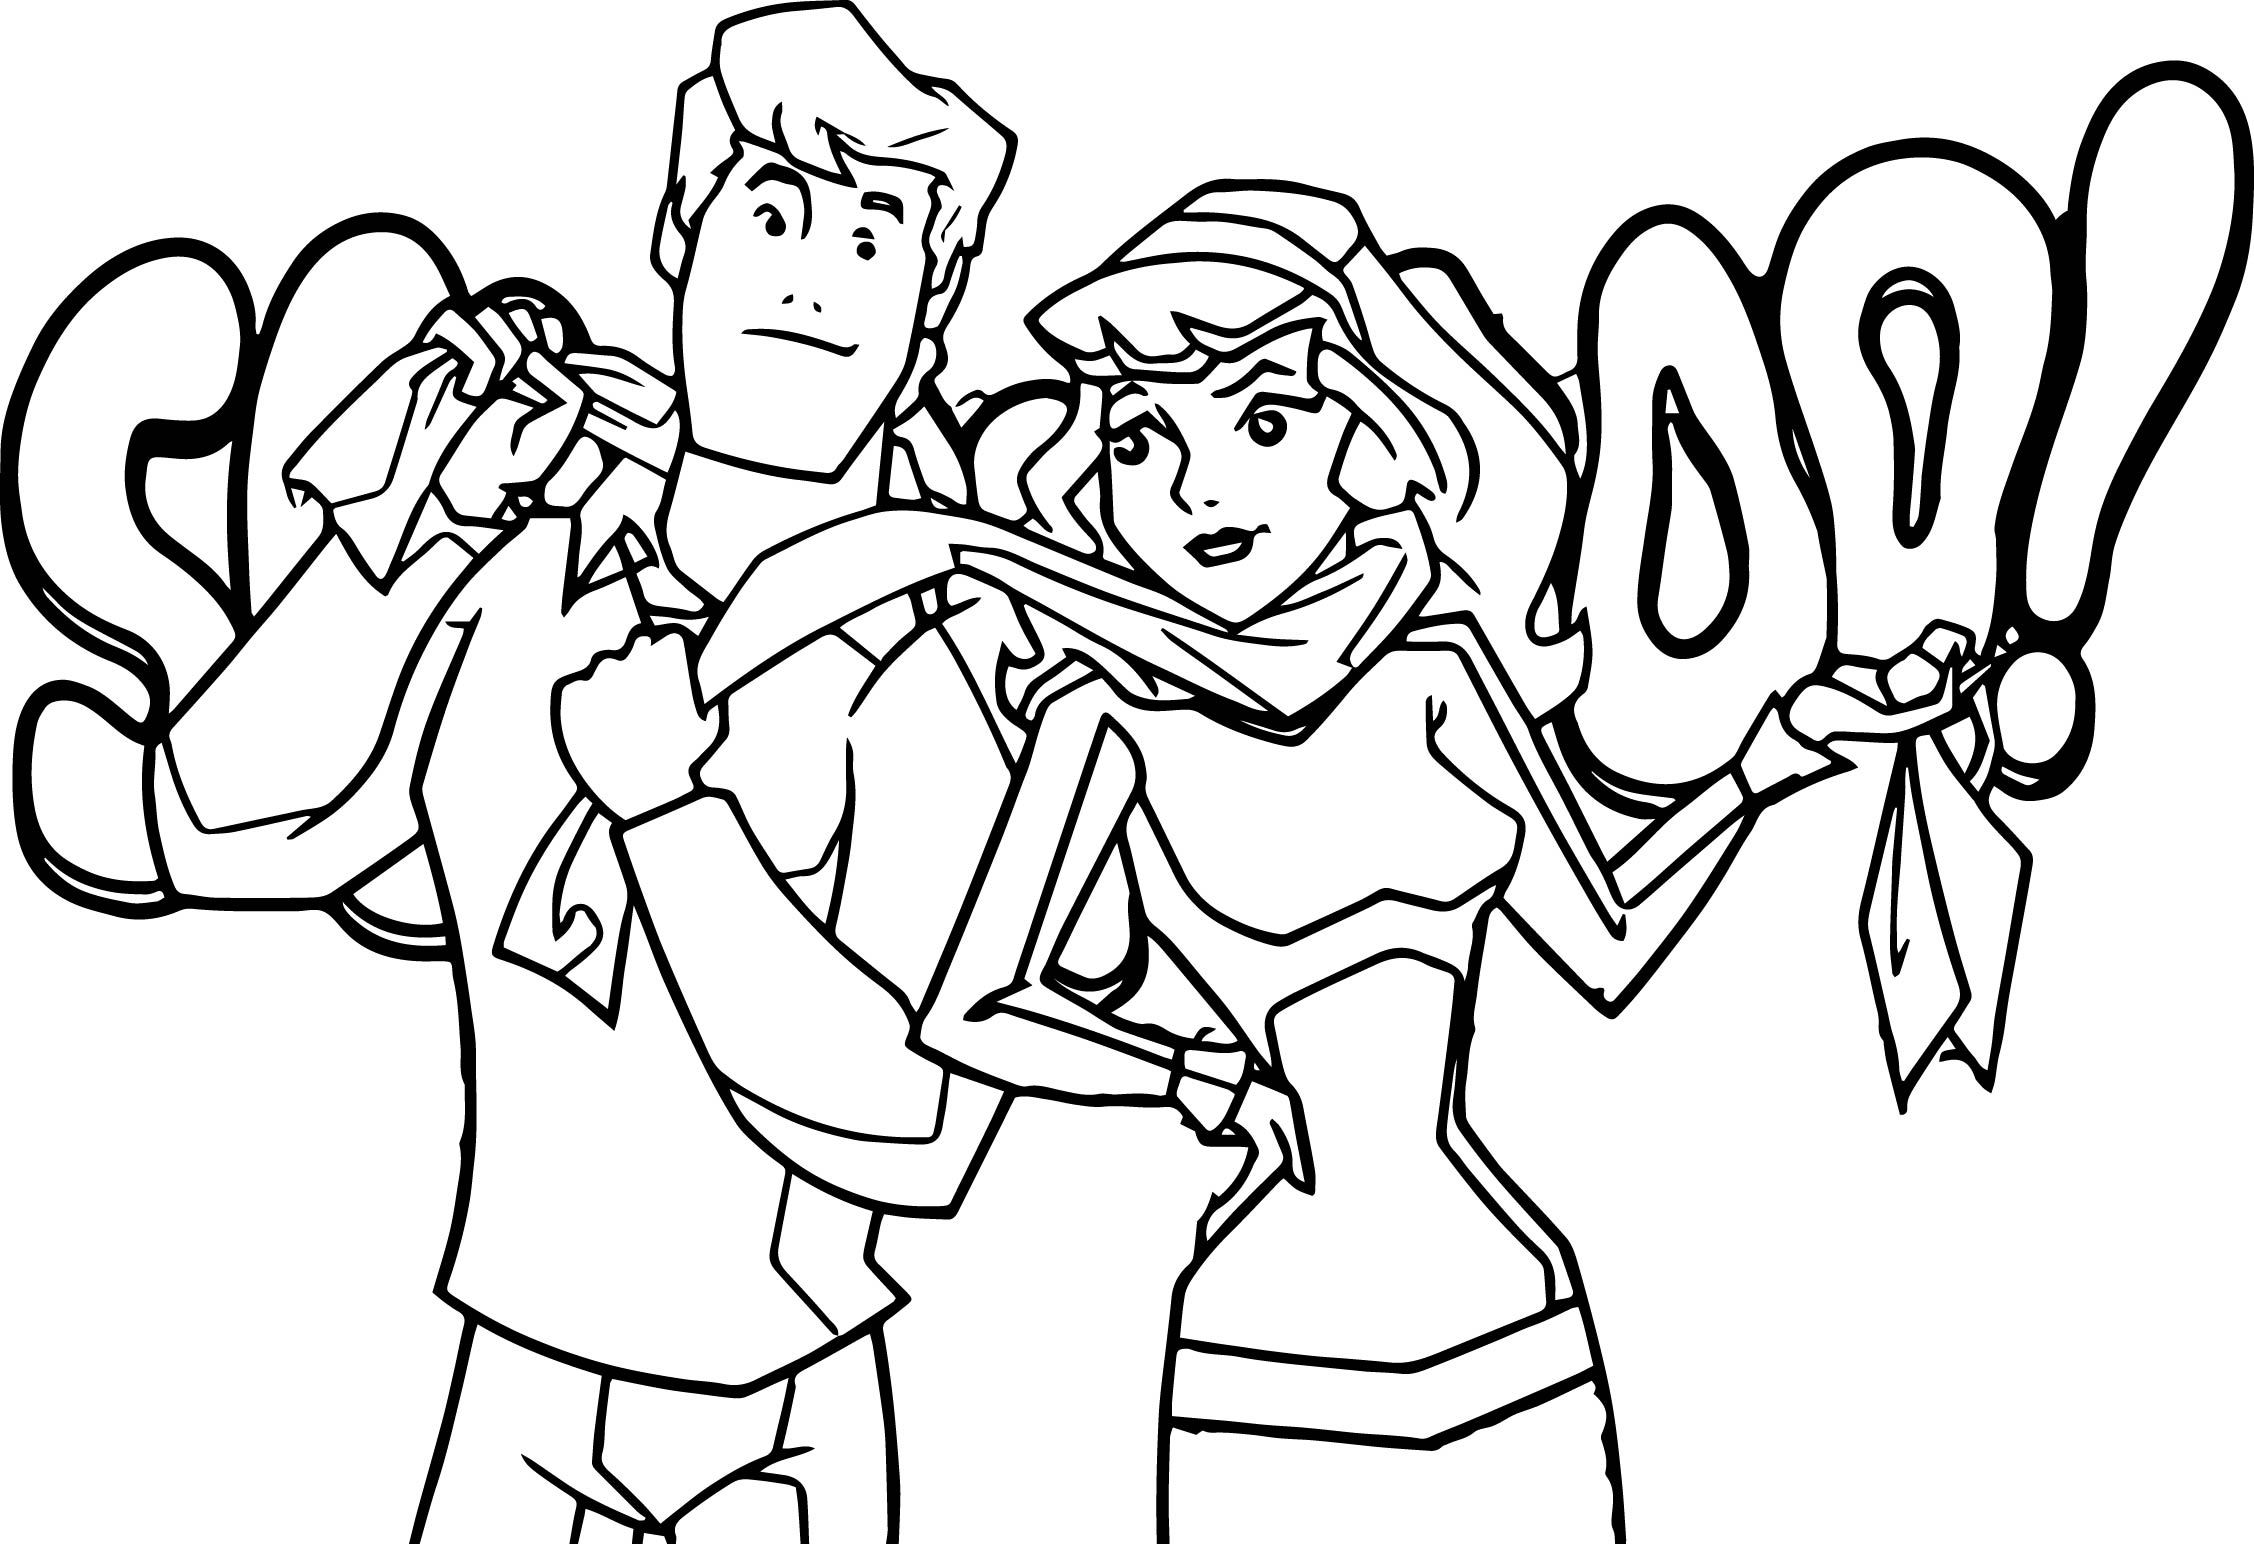 Mystery Coloring Pages Collection 4t - Save it to your computer